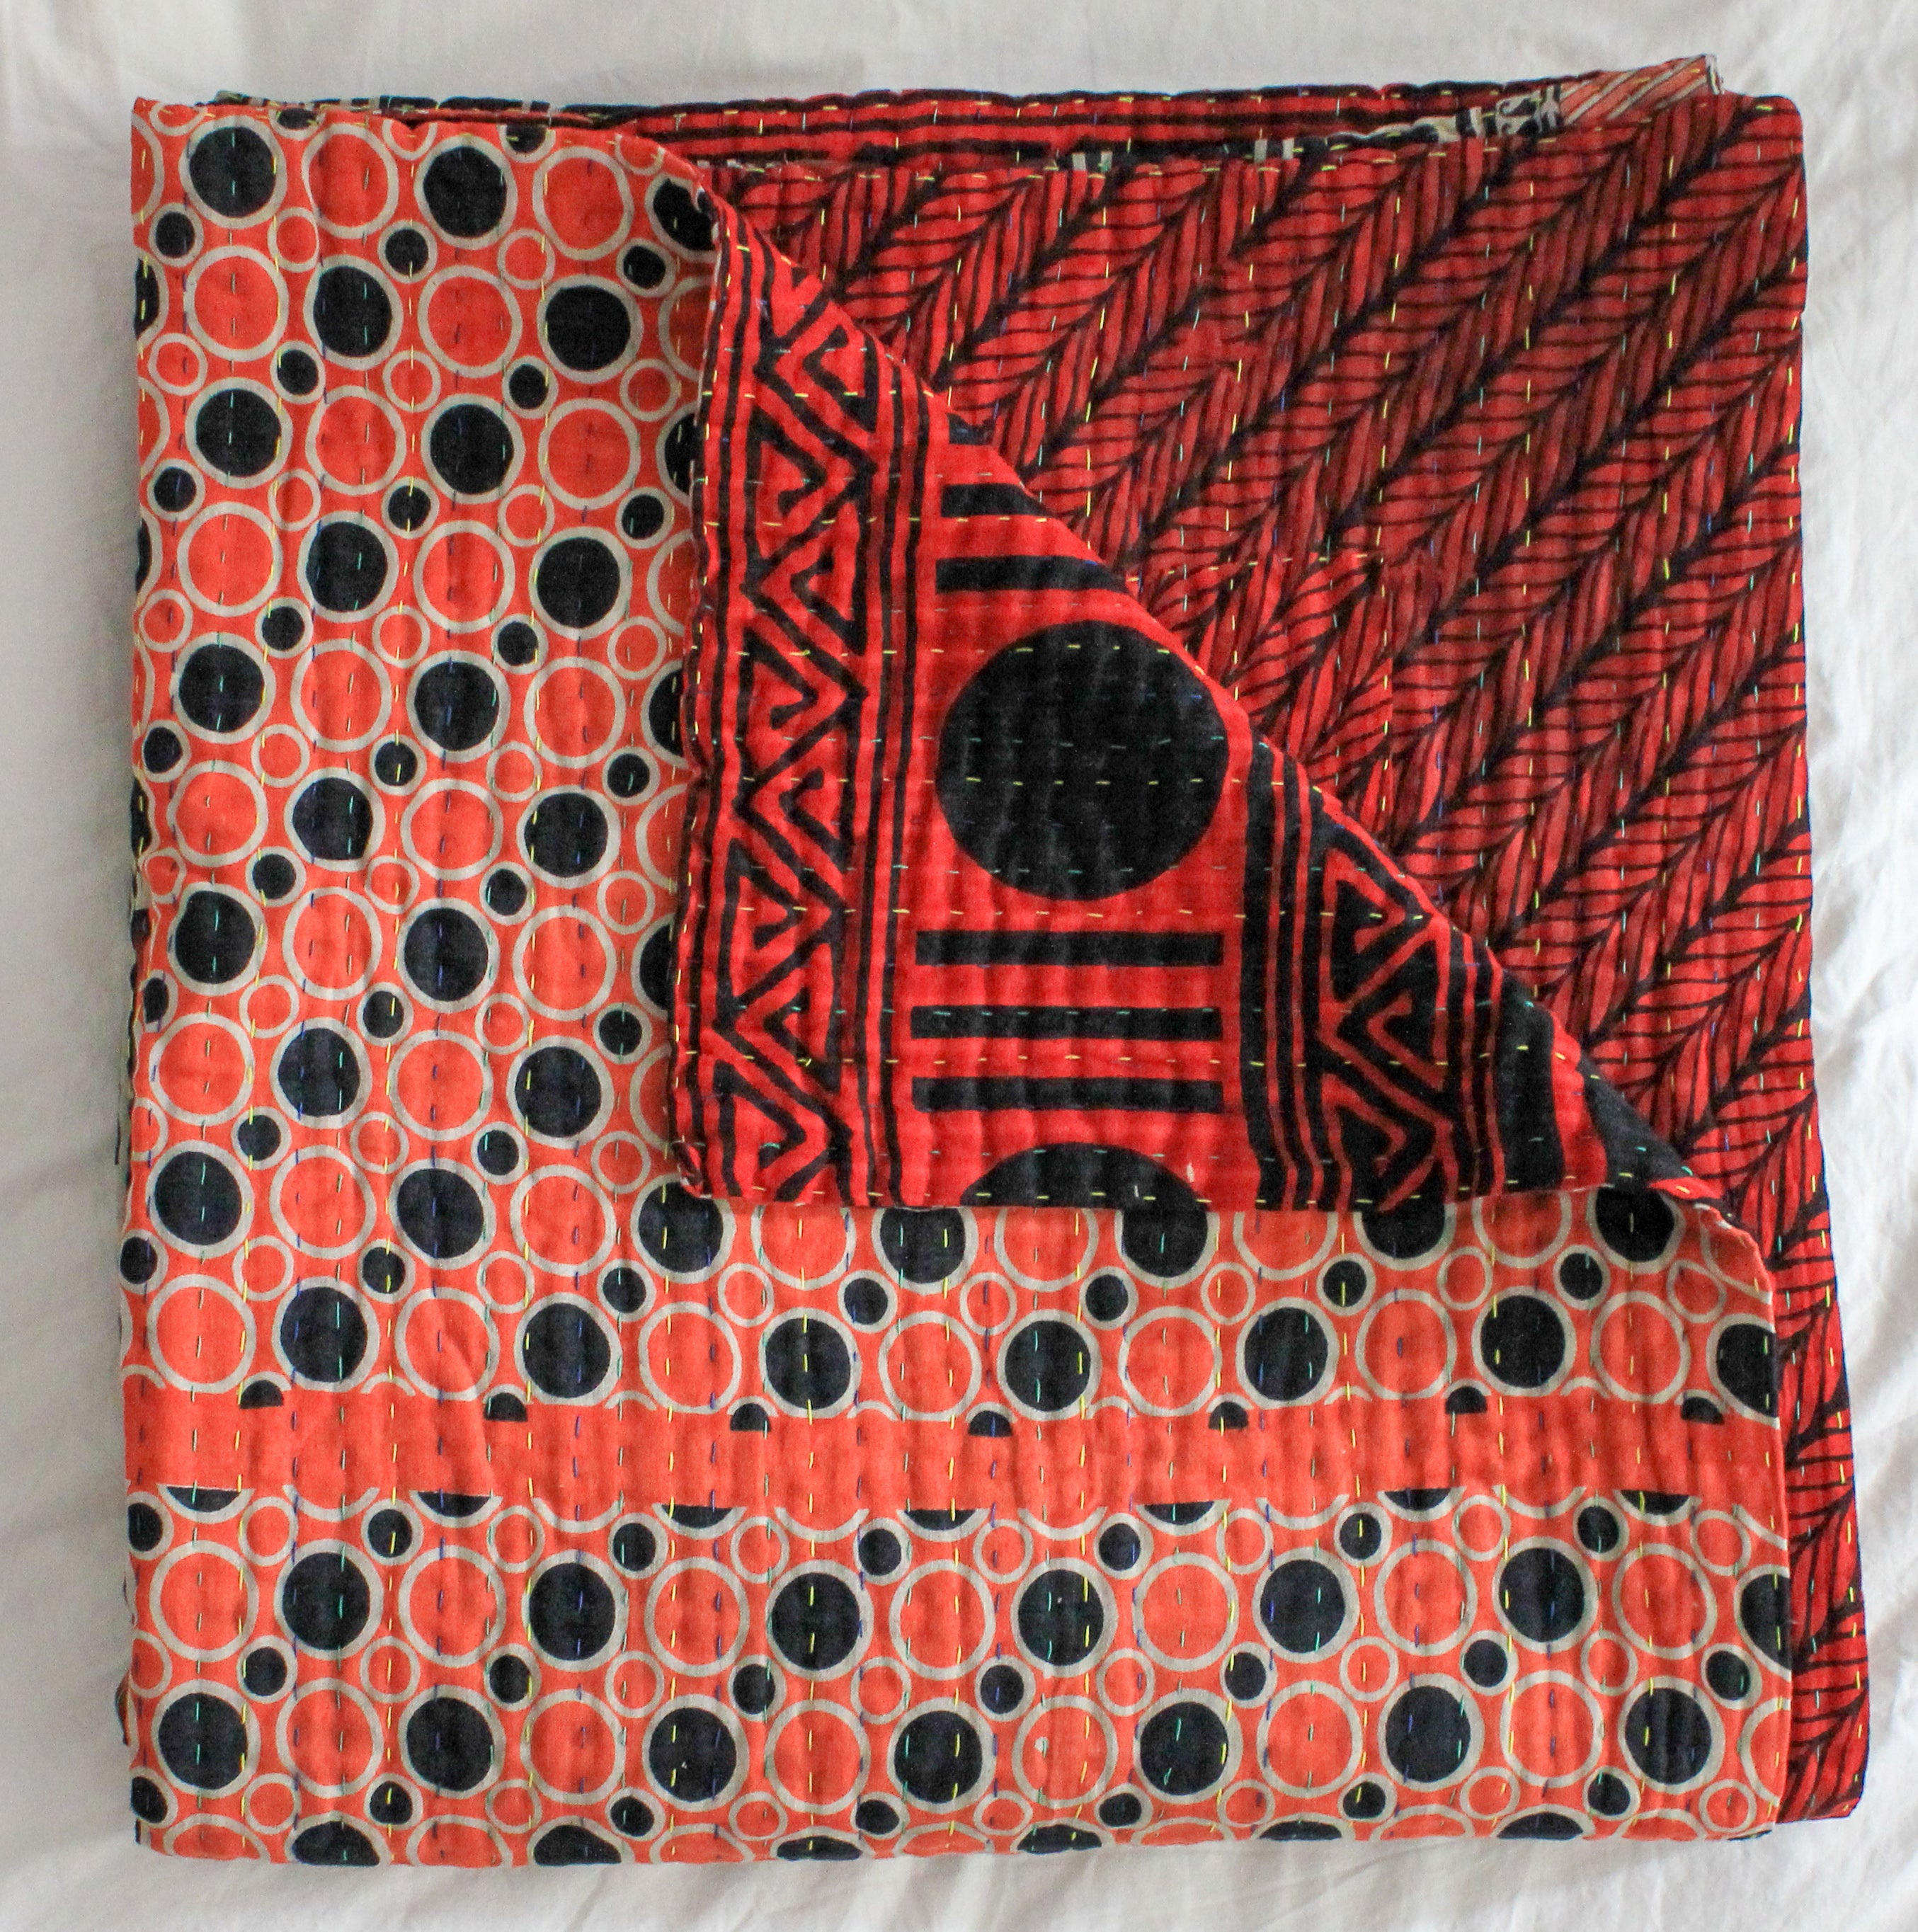 Vintage Kantha Quilt in red and black geometrical pattern - Anokha Collection